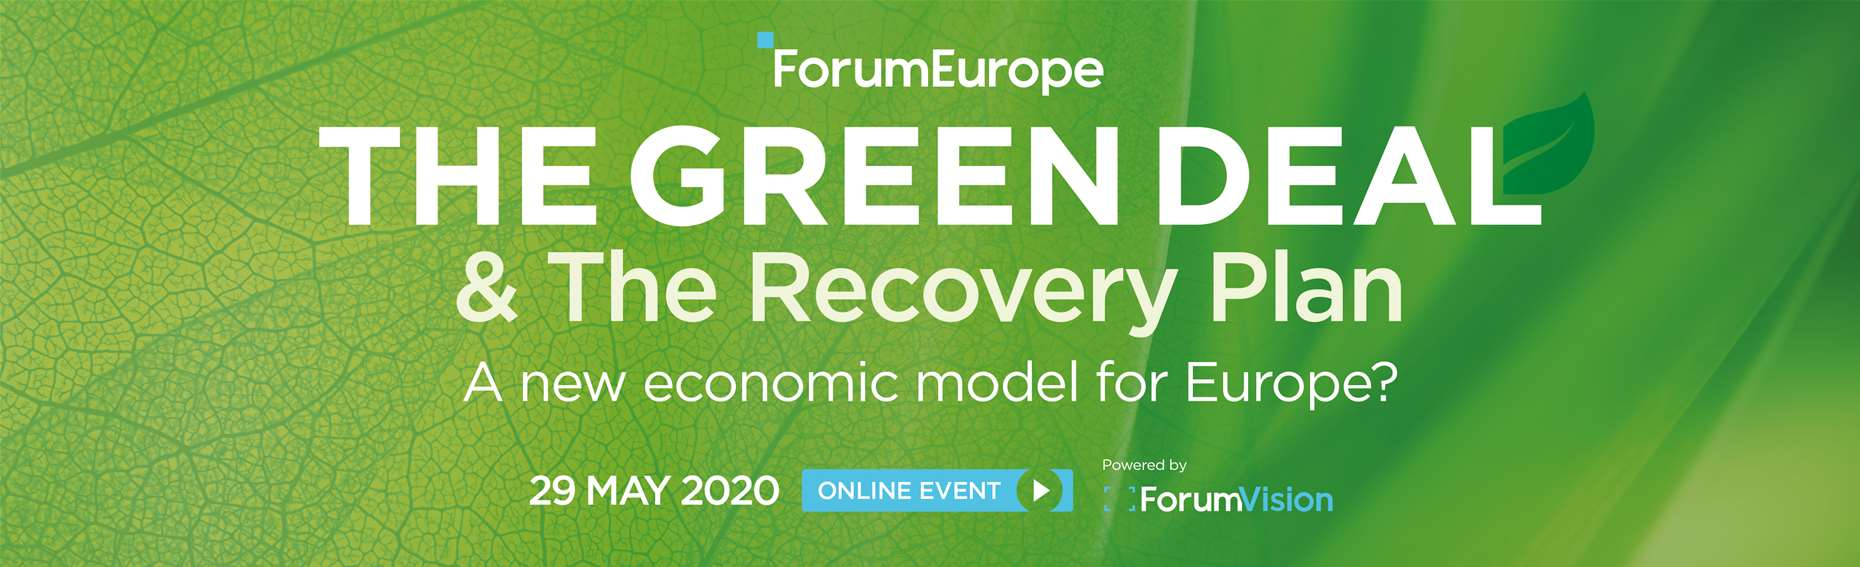 The Green Deal & The Recovery Plan | A New Economic Model for Europe?